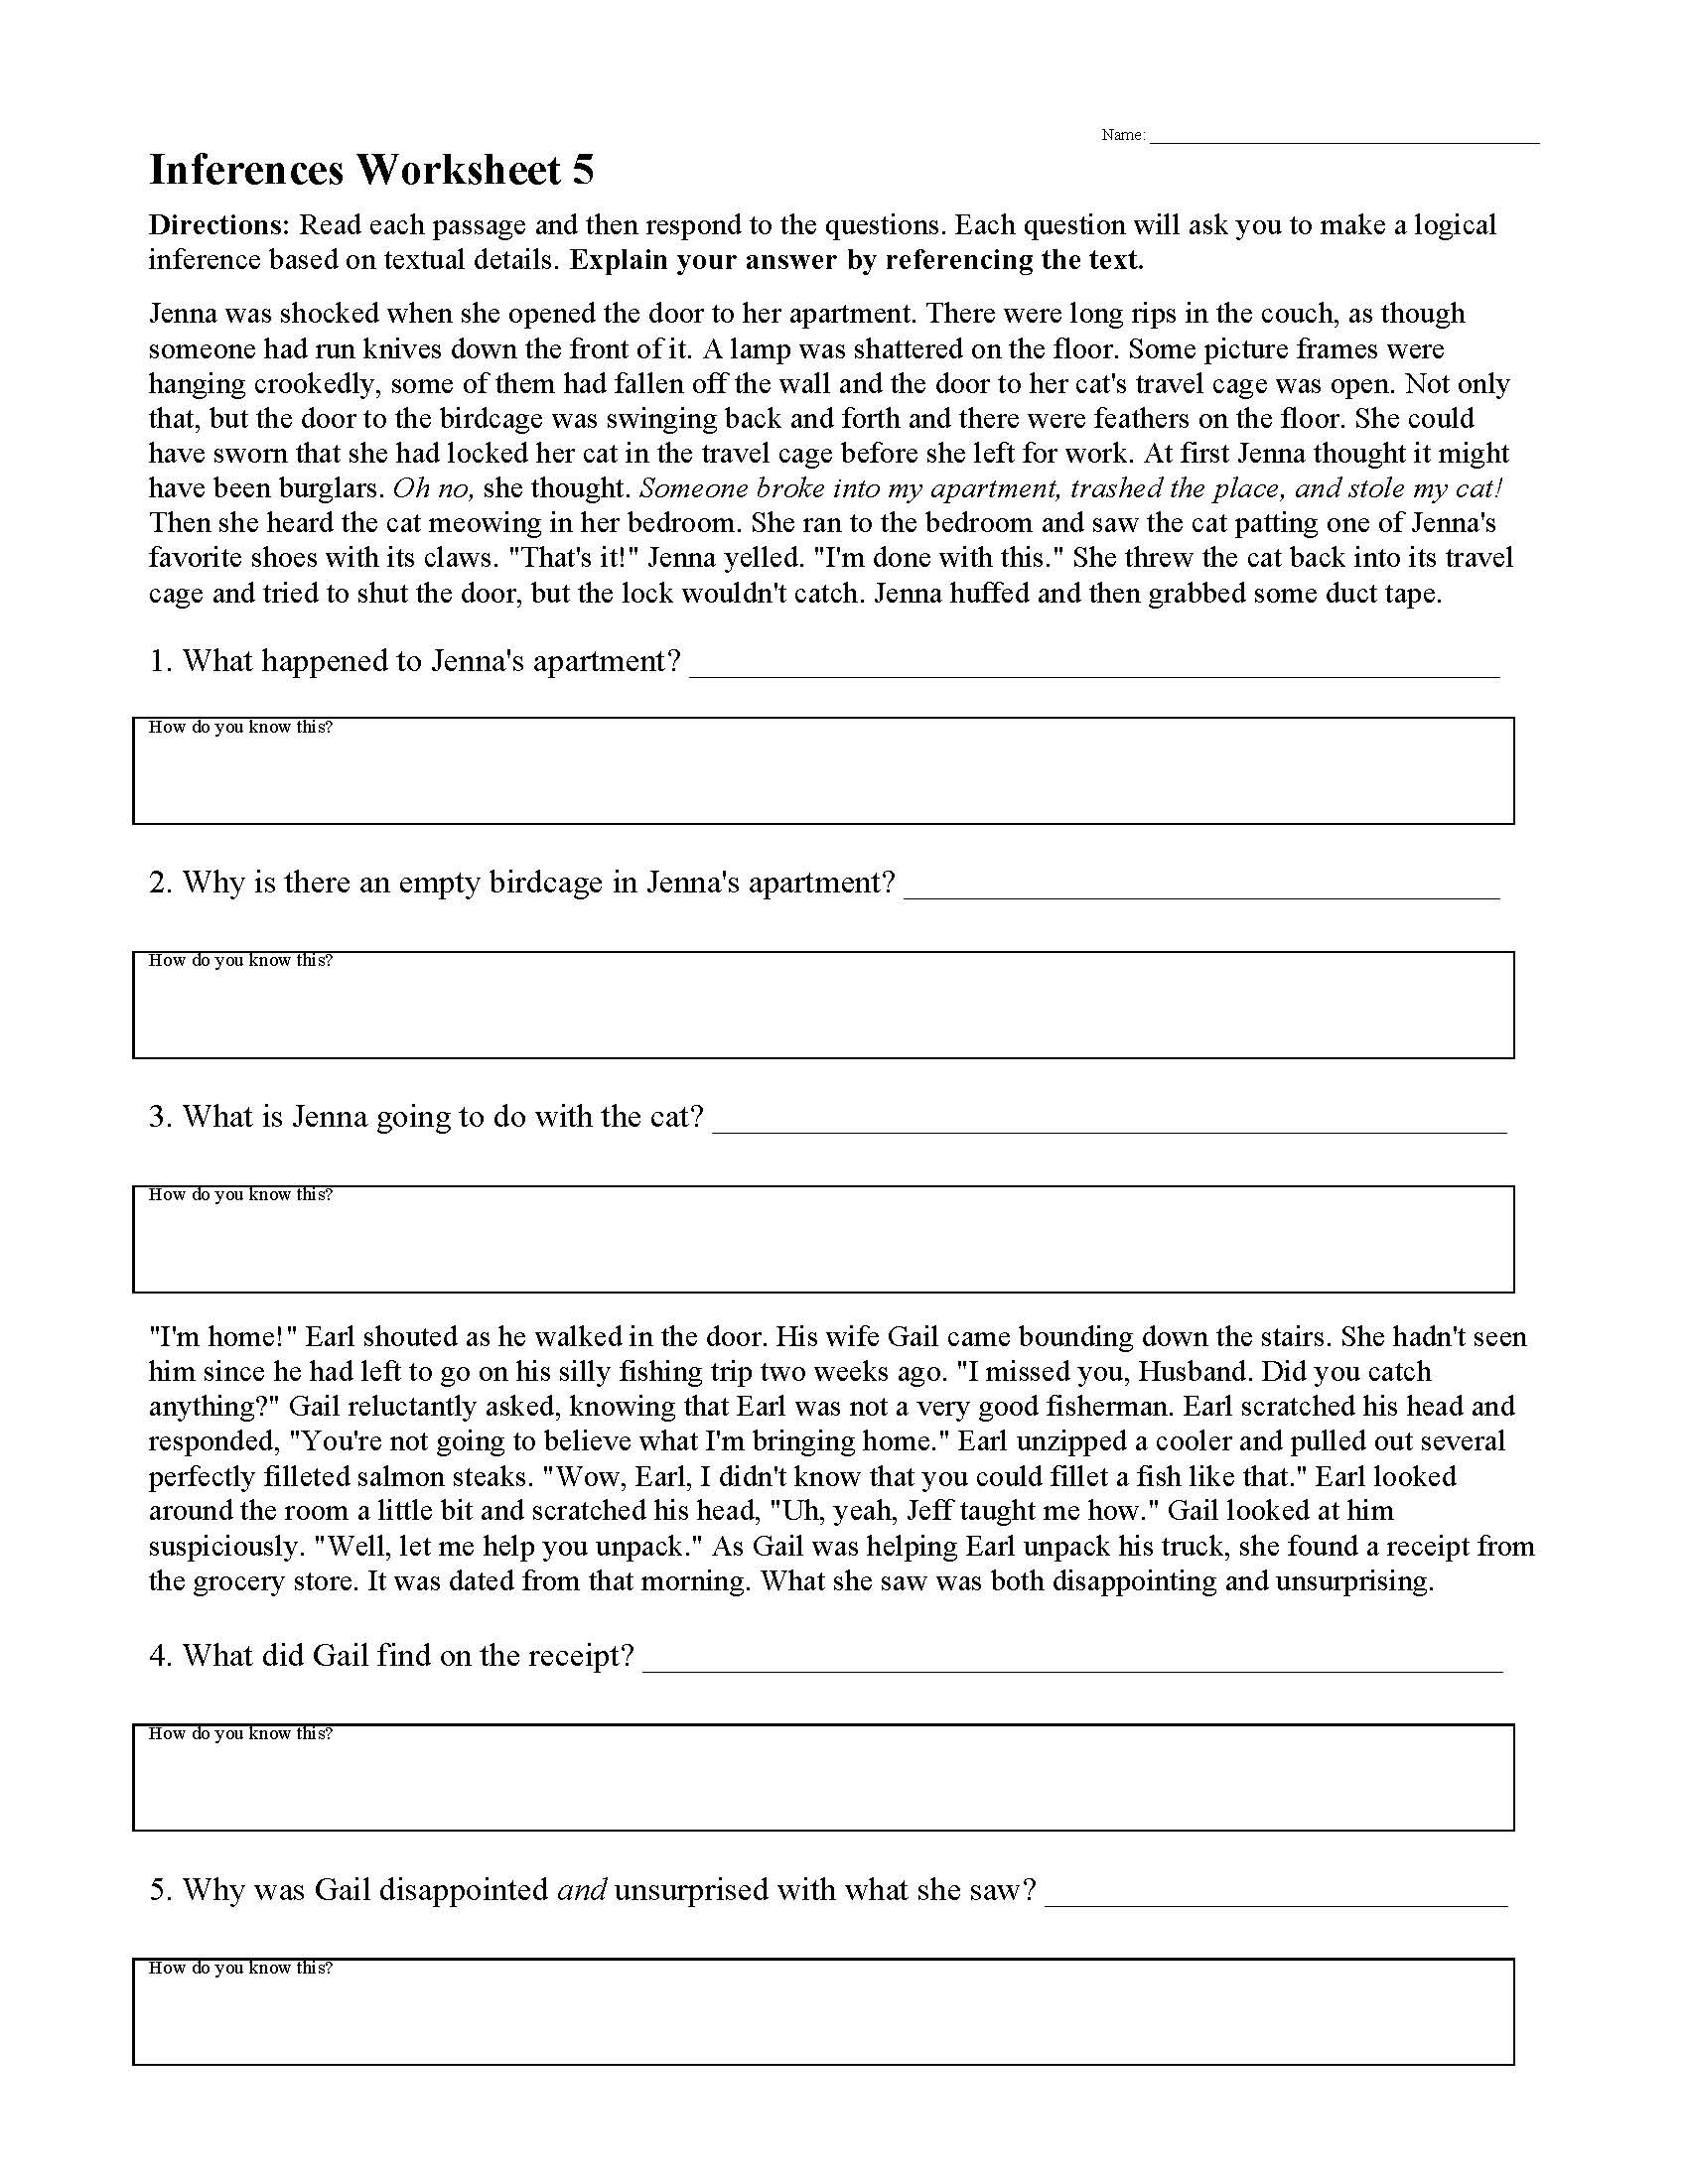 Theme Worksheets High School Inferences Worksheets